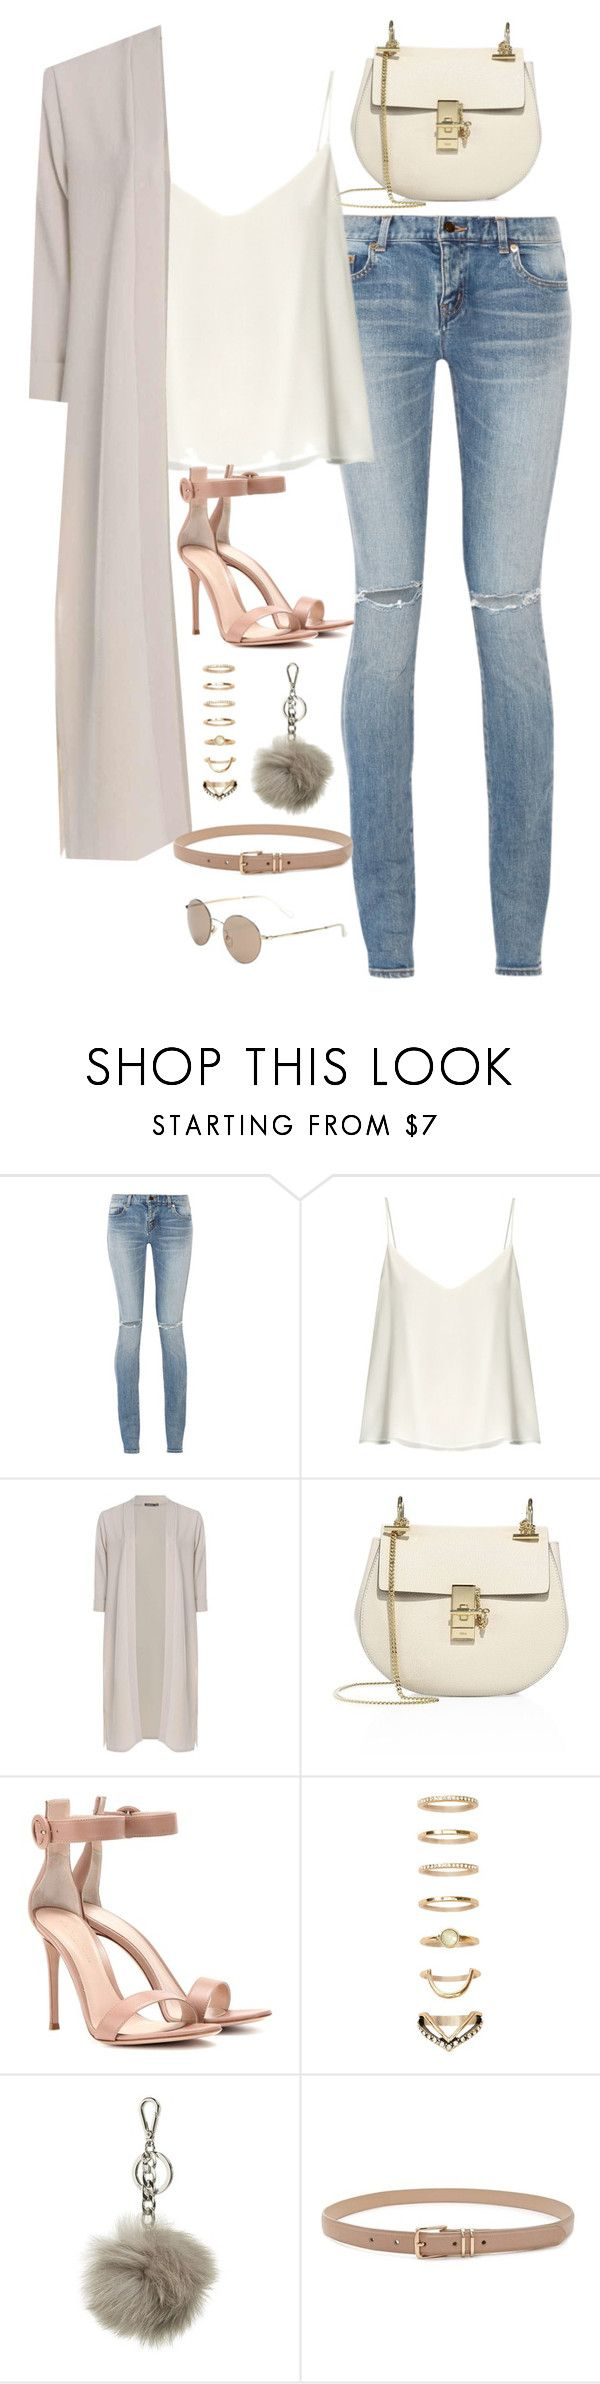 """""""Sem título #5003"""" by fashionnfacts ❤ liked on Polyvore featuring Yves Saint Laurent, Raey, Boohoo, Chloé, Gianvito Rossi, Forever 21, MICHAEL Michael Kors and Gucci"""